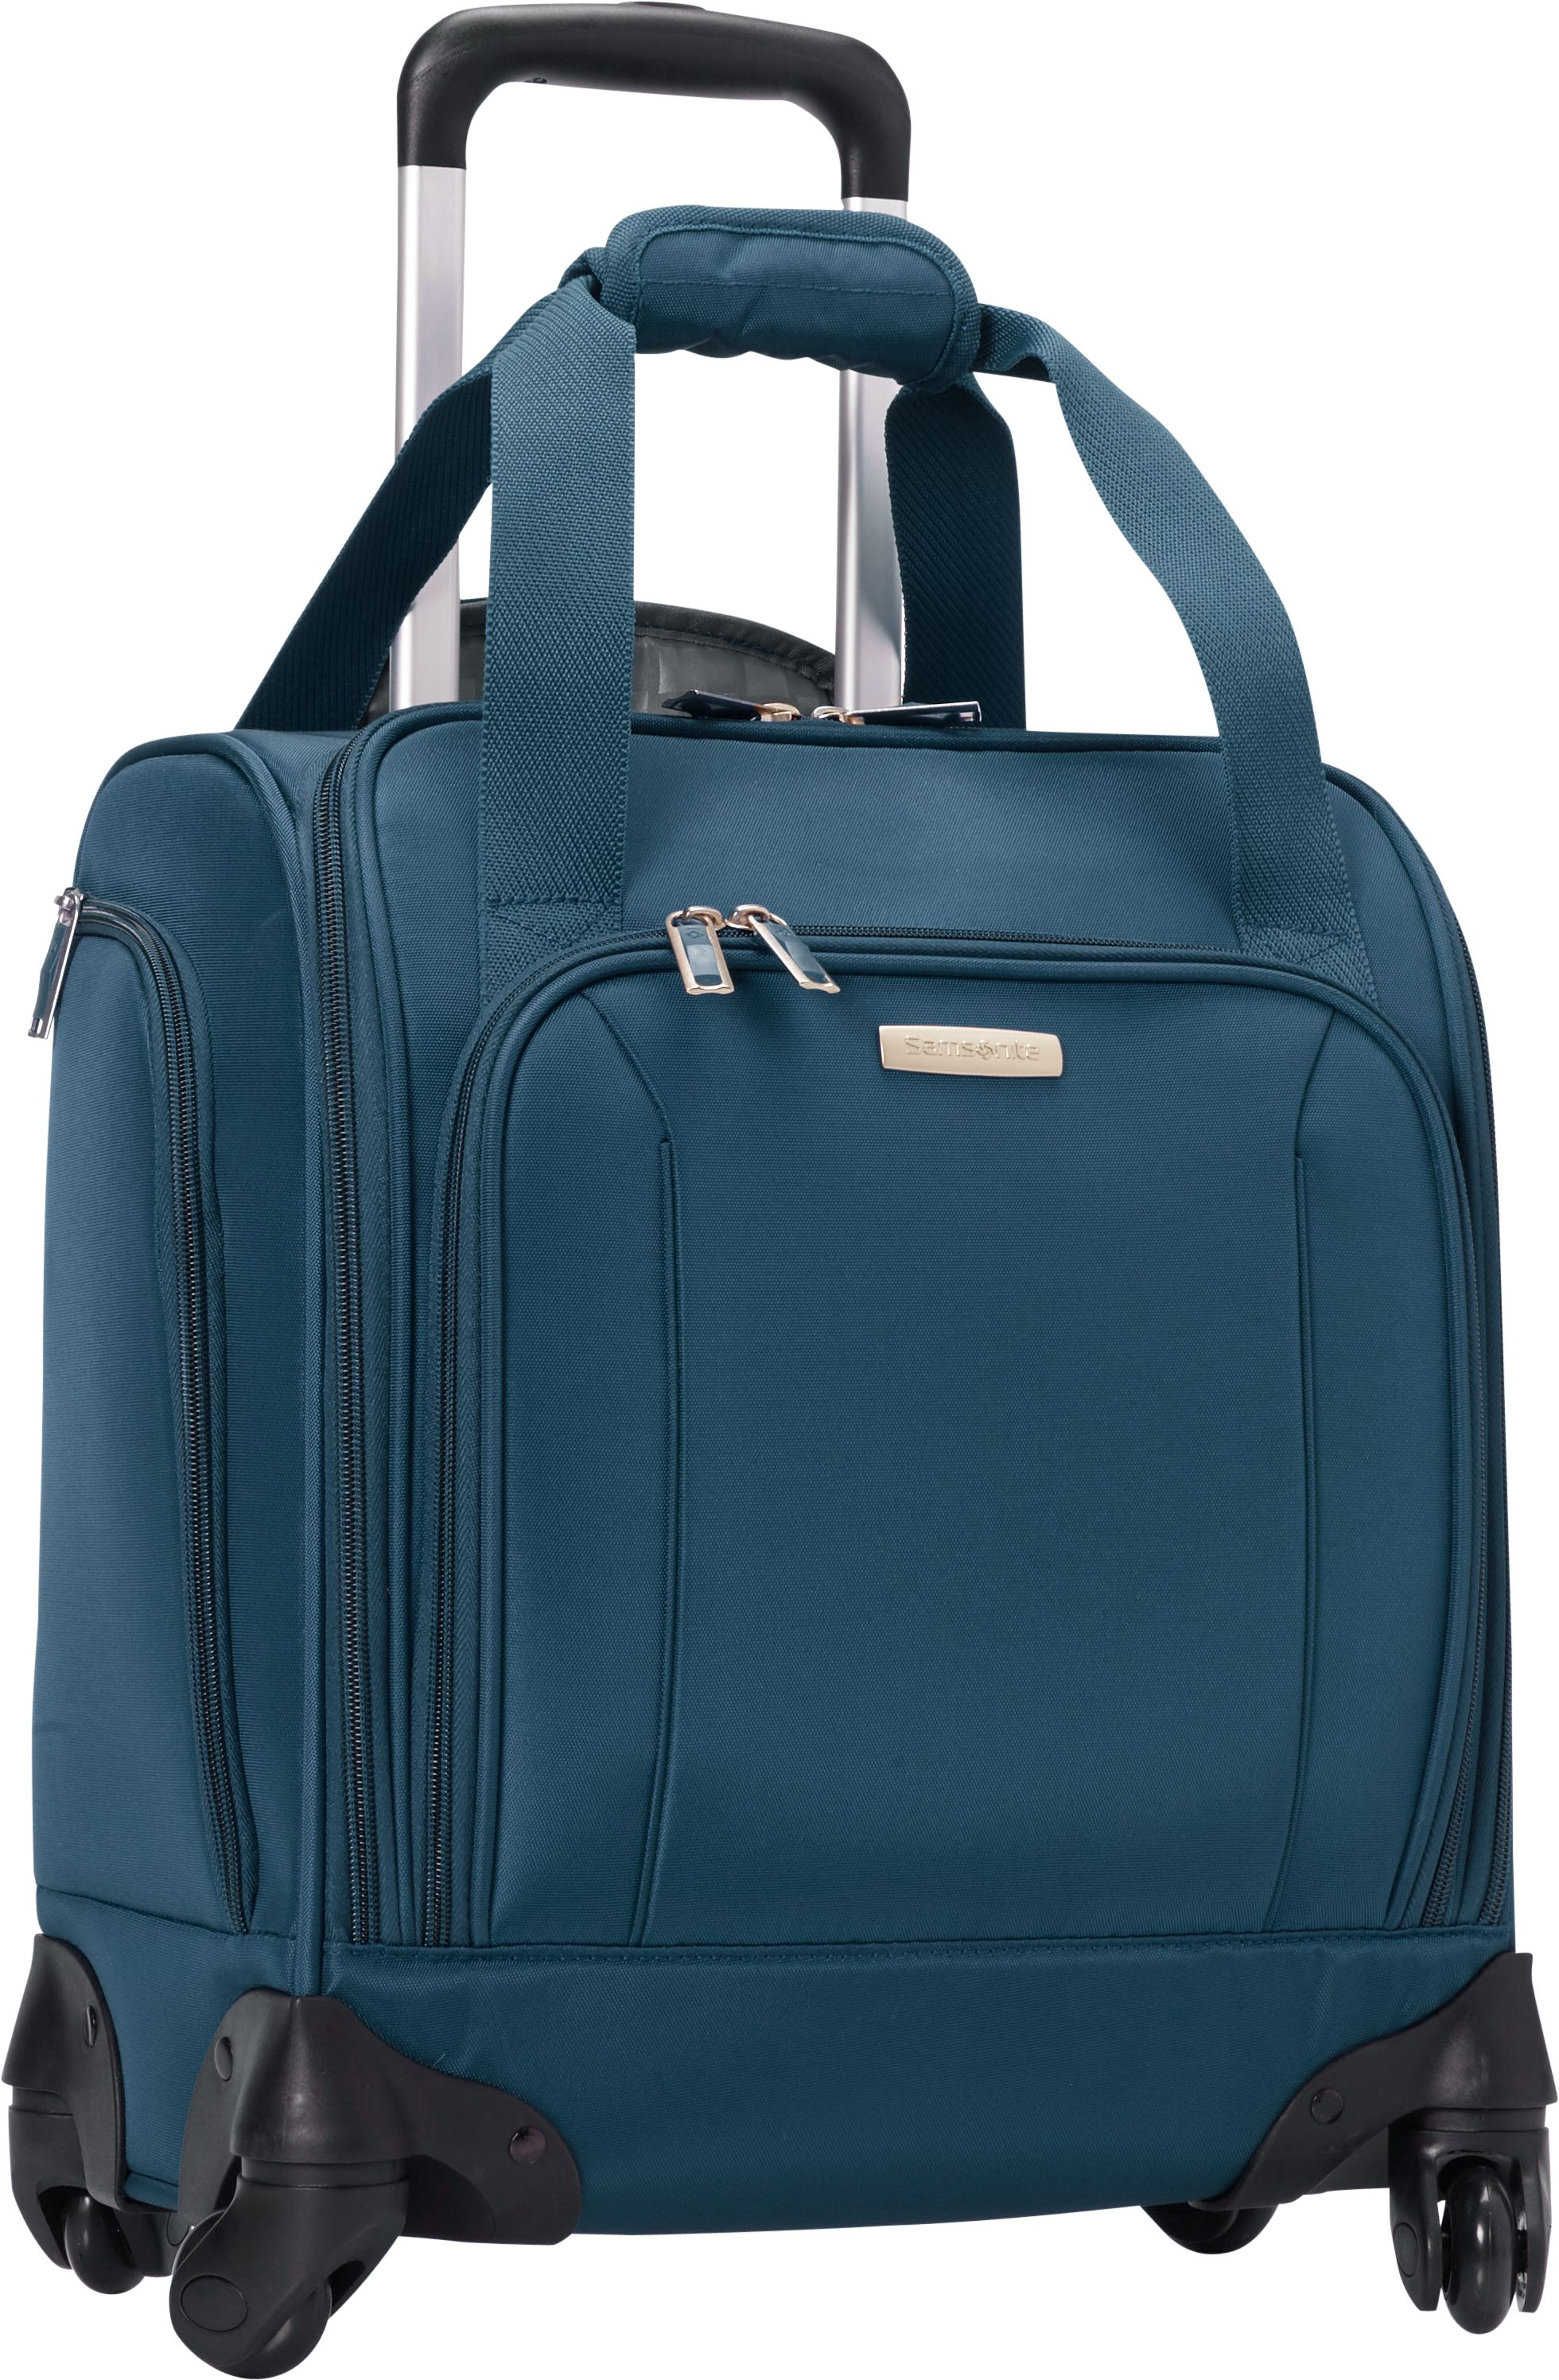 e48dcd535d2a Underseat Luggage | Luggage and Gear | Luggage accessories, Travel ...